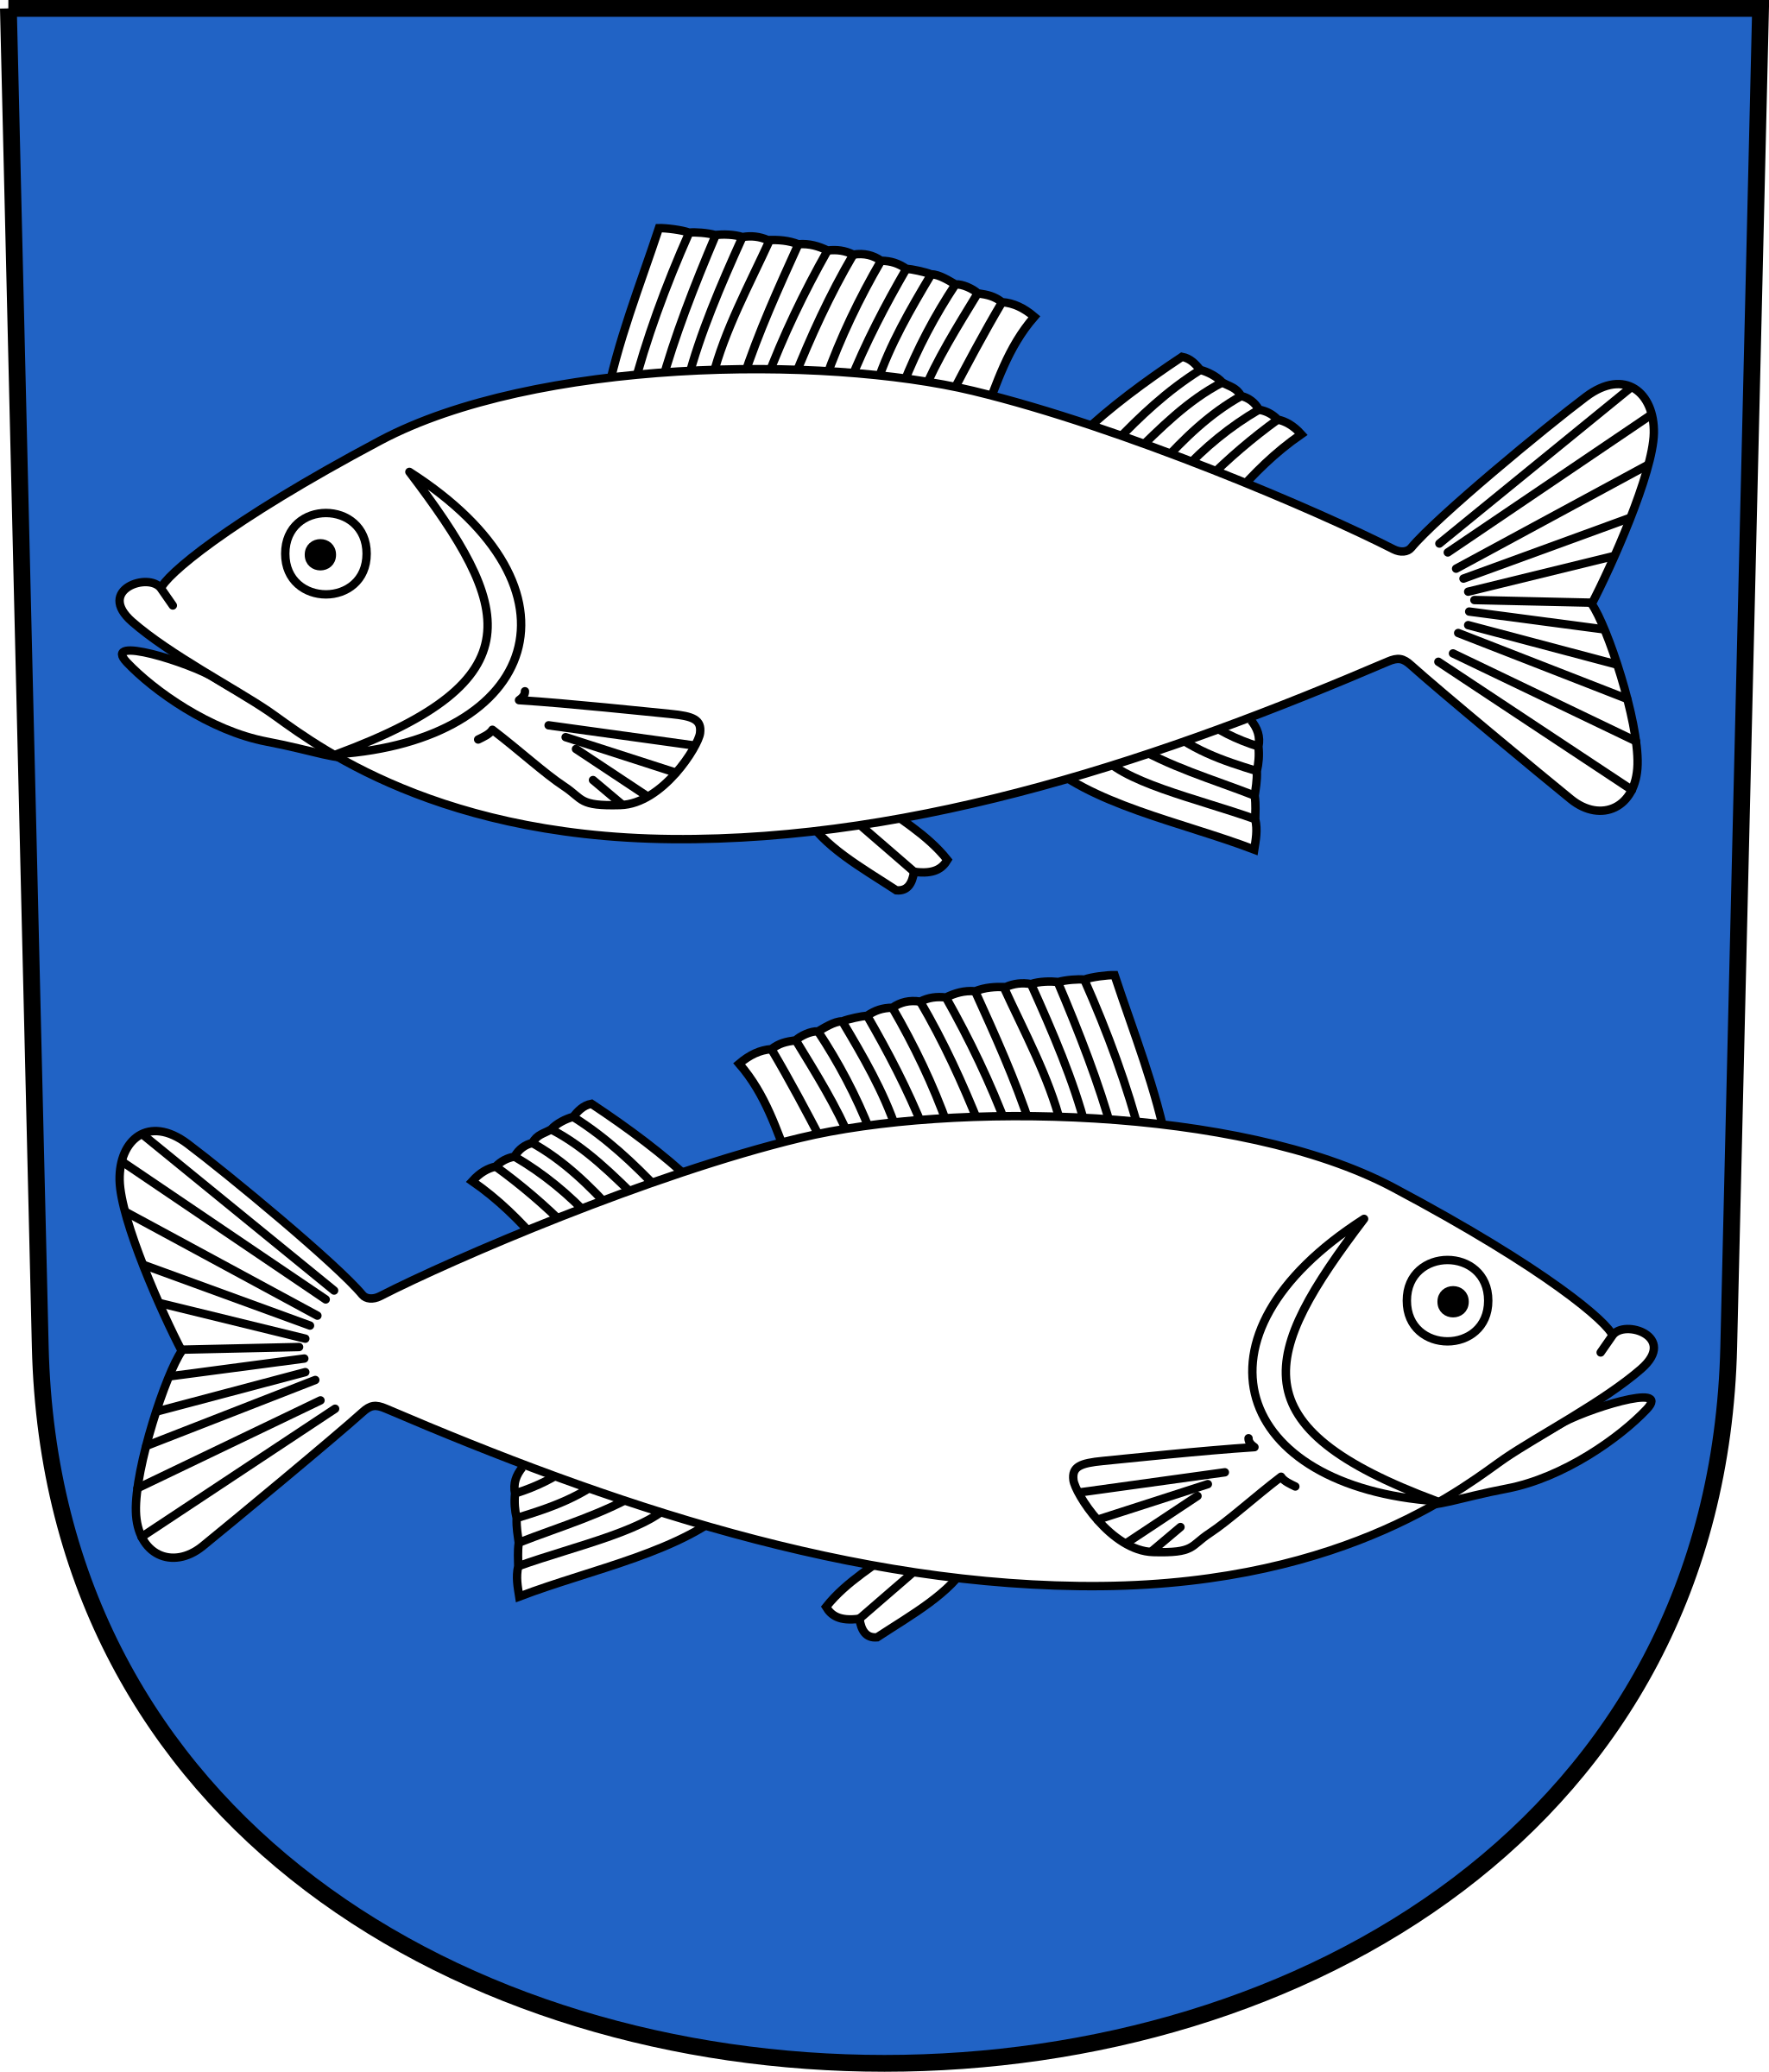 Fischenthal - Coat of arms by wipp